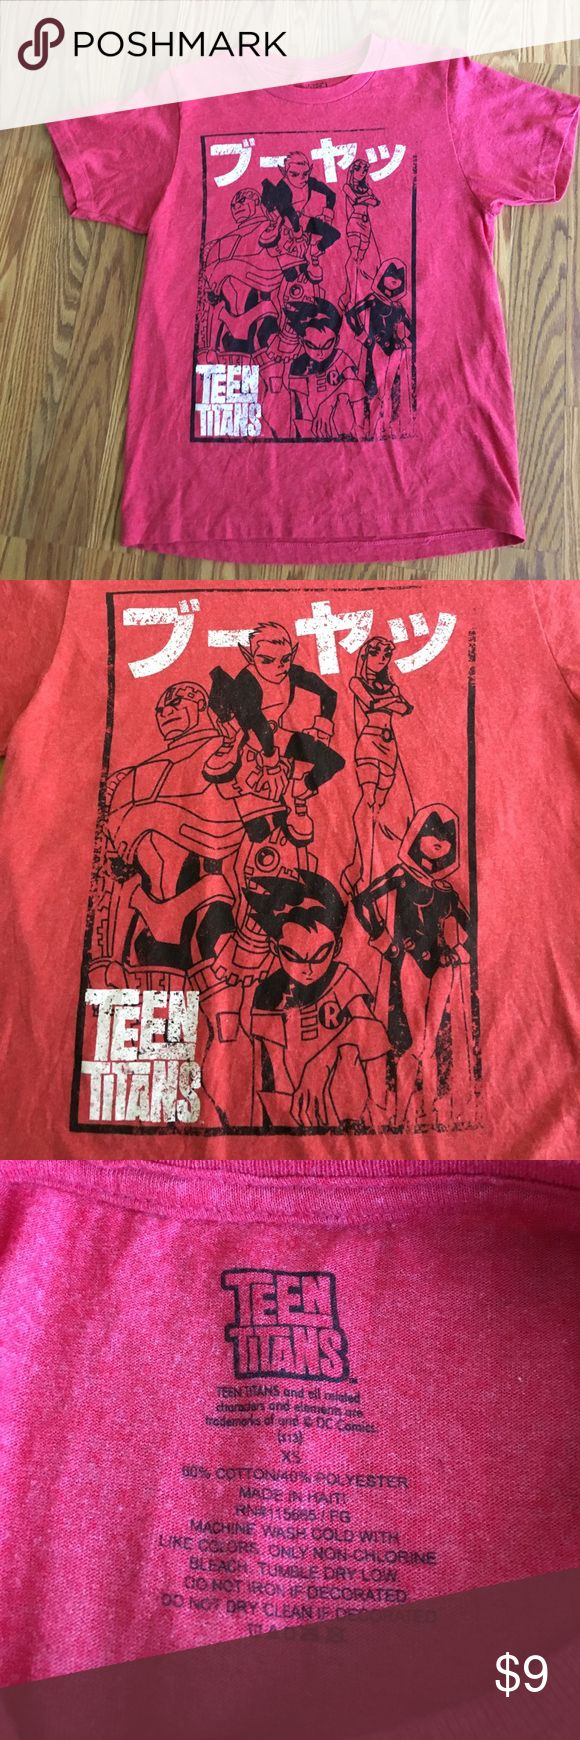 Women's XS Teen Titans T-Shirt Show your inner fan for the Teen Titans with this red Teen Titan member T-Shirt! Distressed printing is part of the shorts design! Gently worn. In great condition! No flaws! 🔴🤓💁🏽🔴 Bundle and save! Tops Tees - Short Sleeve